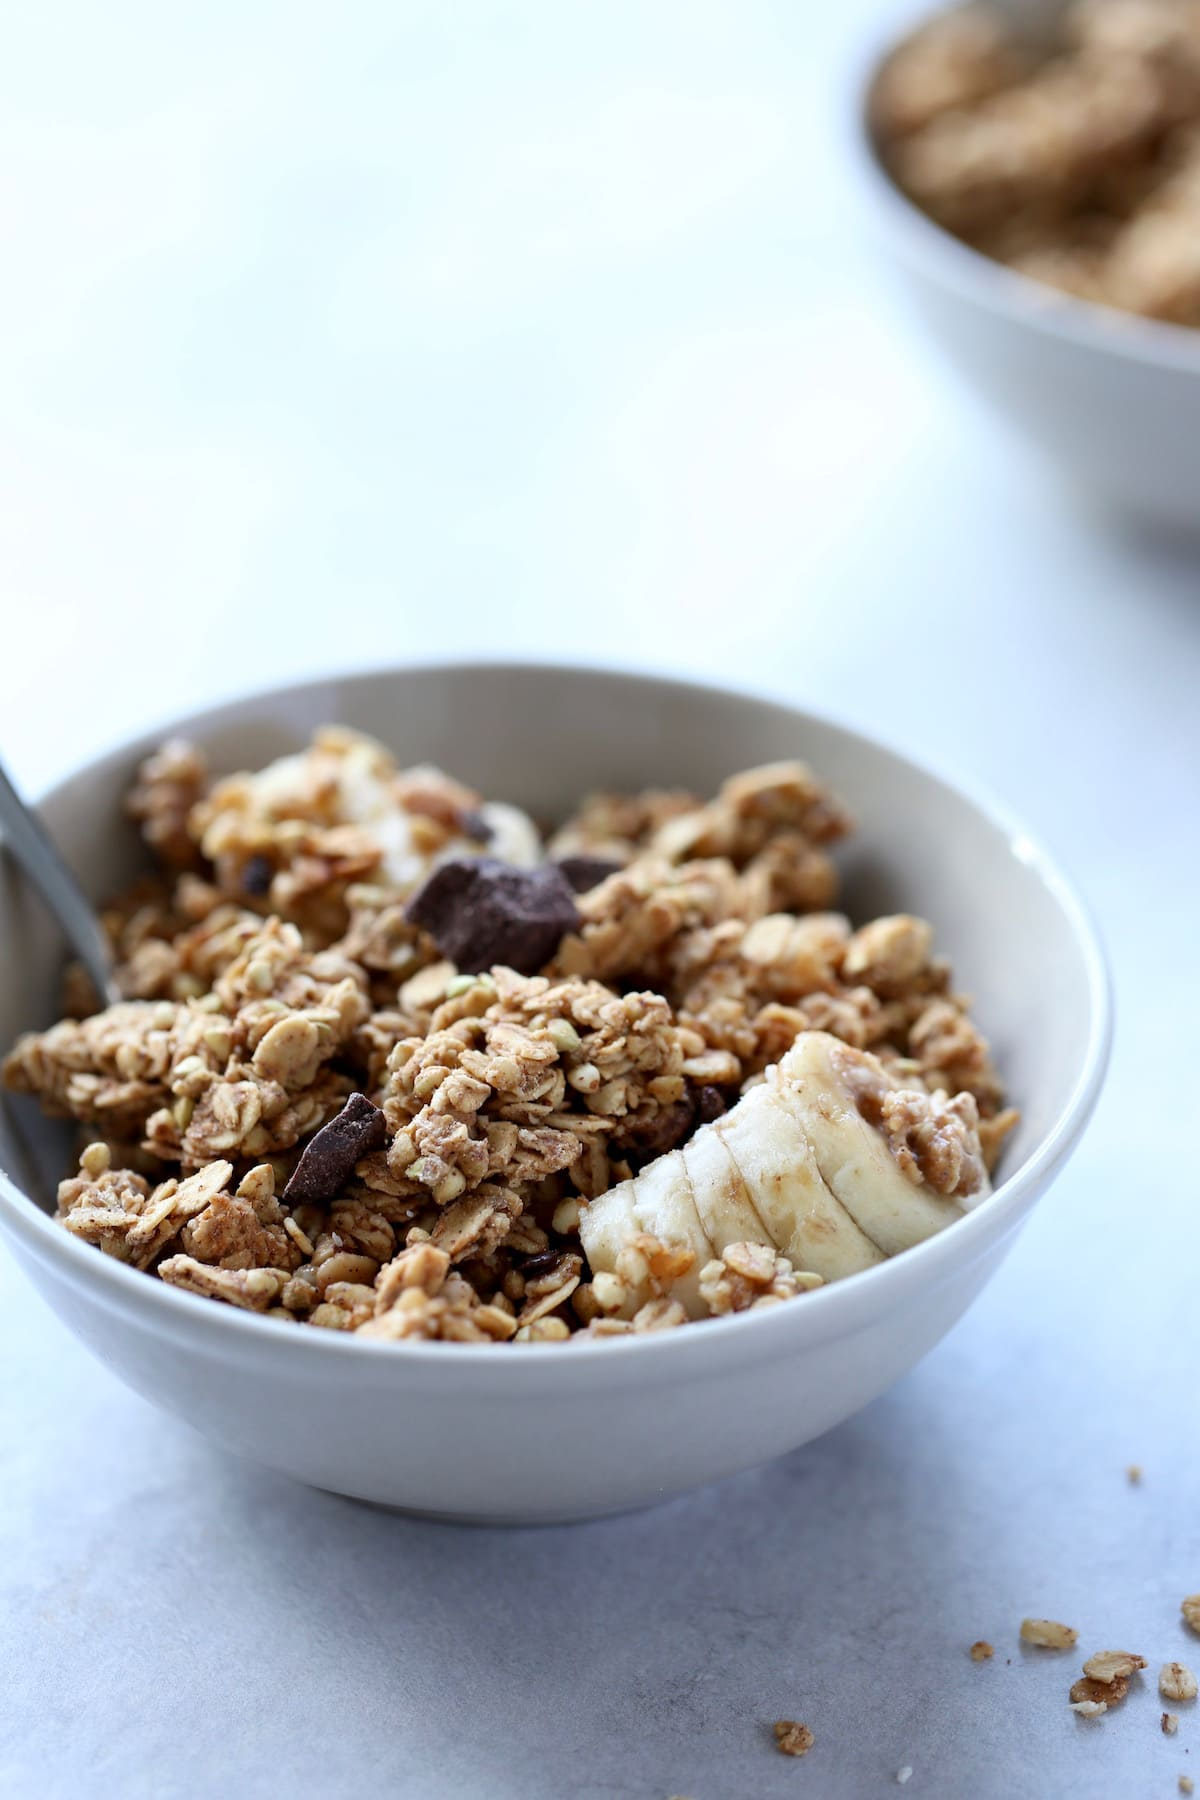 A bowl of peanut butter granola with banana